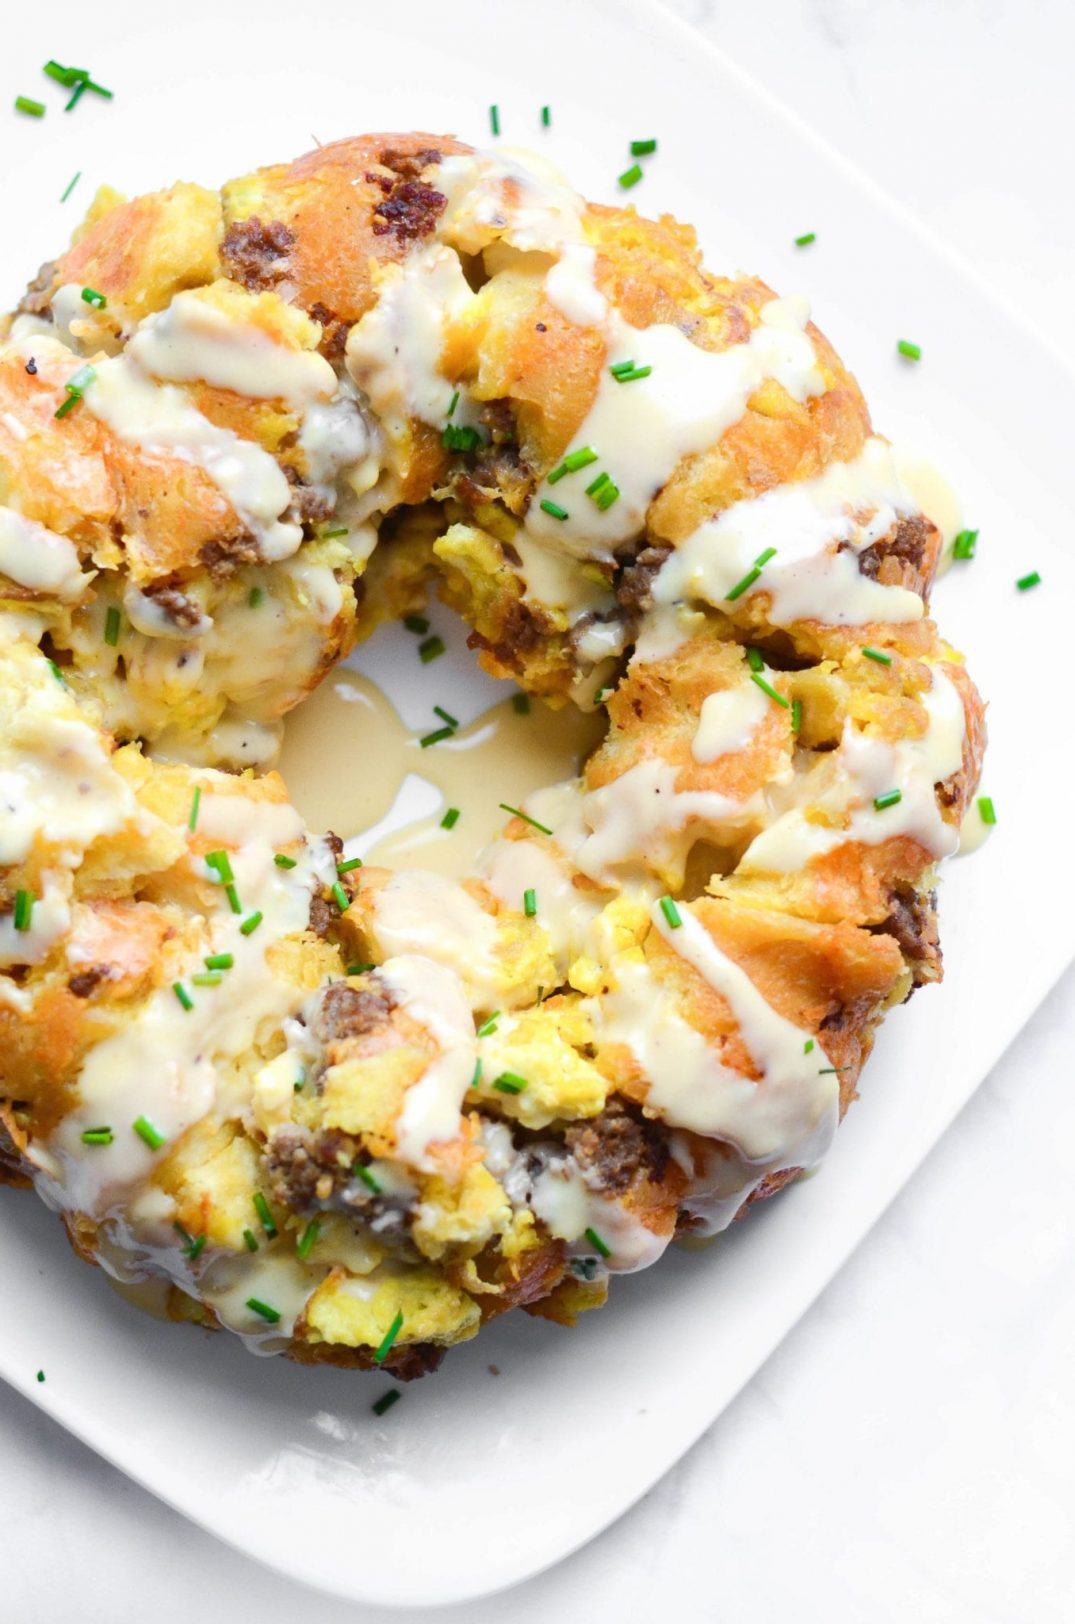 Cheesy Breakfast Monkey Bread With Sausage and Eggs